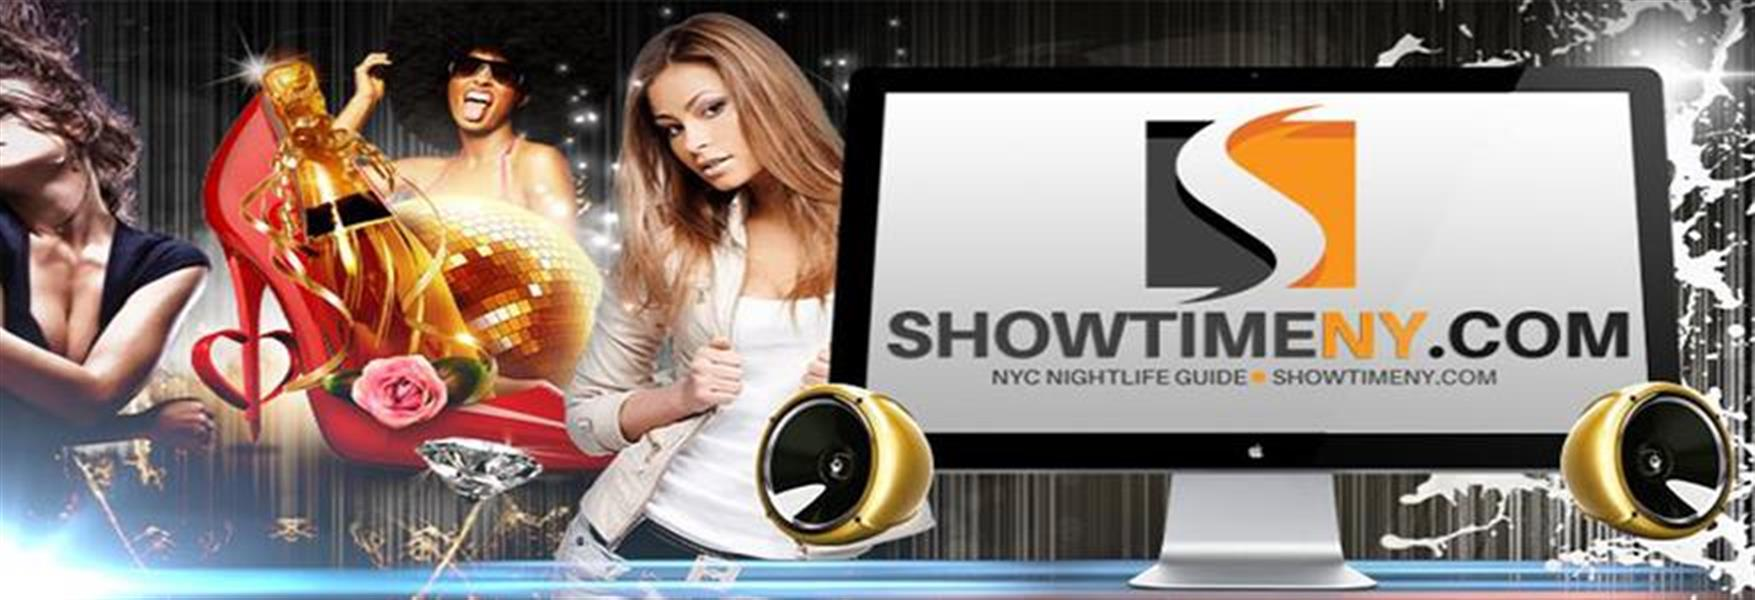 41187064-38df-4d6f-9748-fa51dd766da0_showtime banner long.jpg